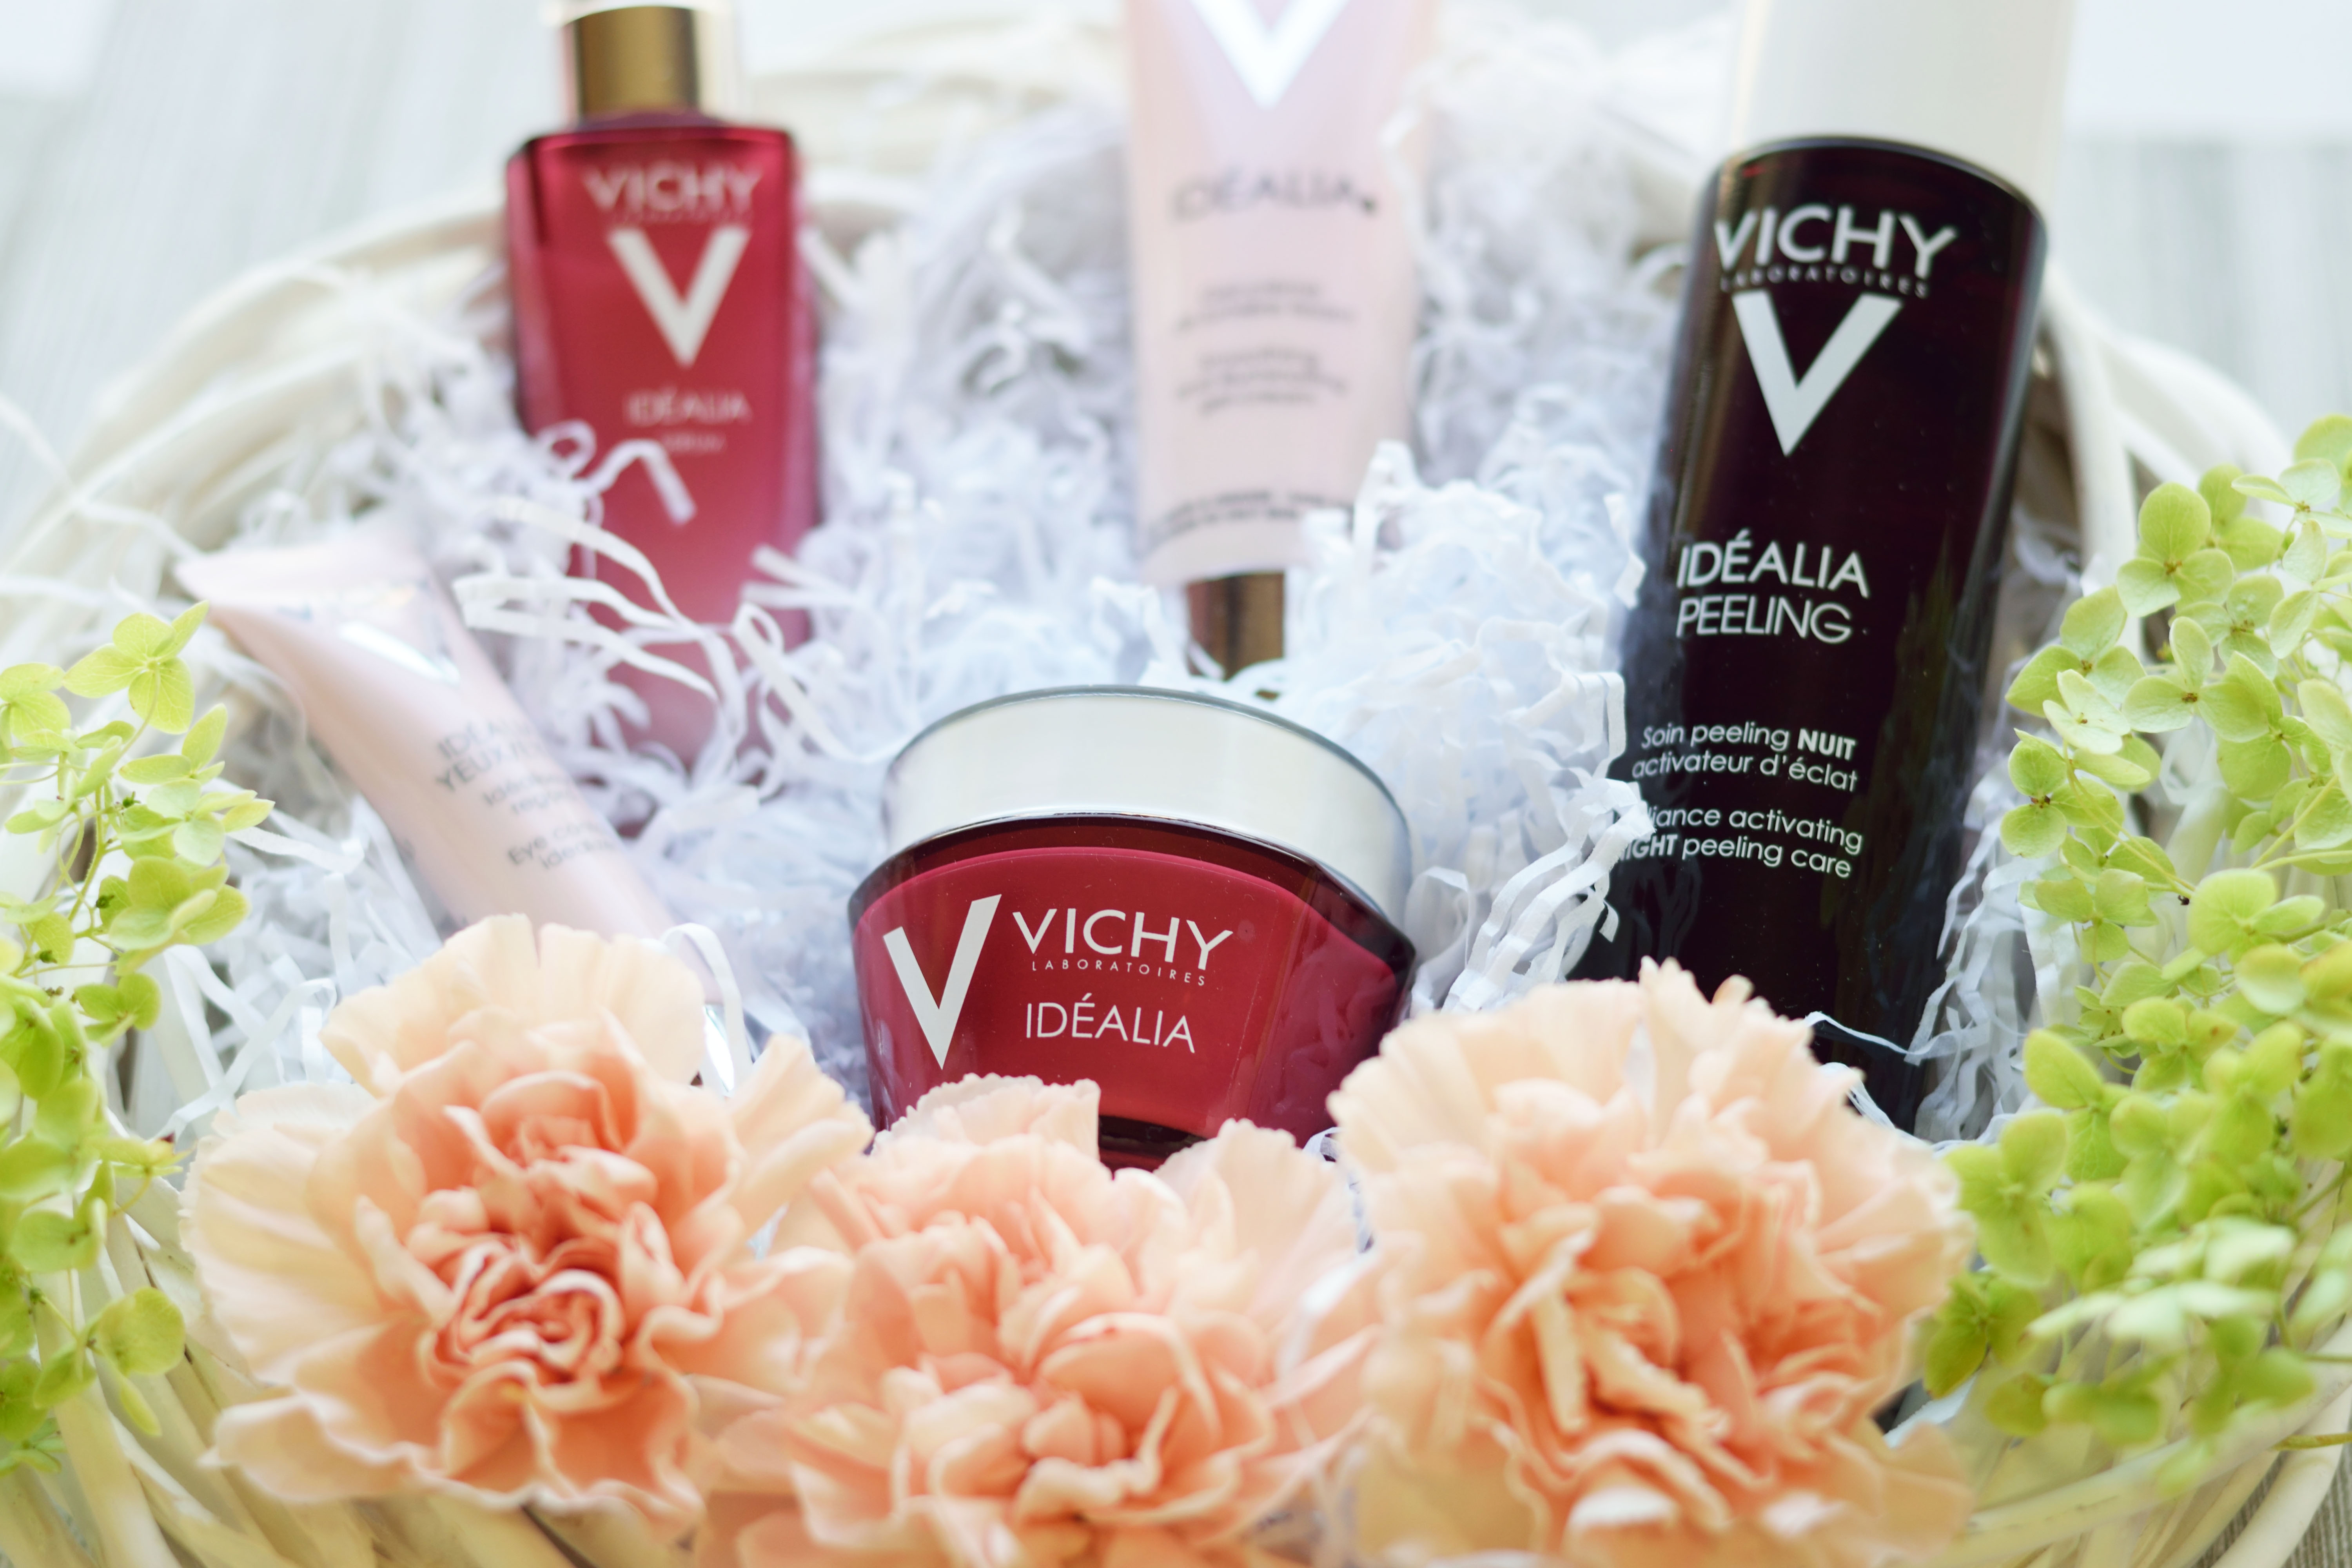 Idealia Skincare from Vichy review - The Perfect 30's Skincare